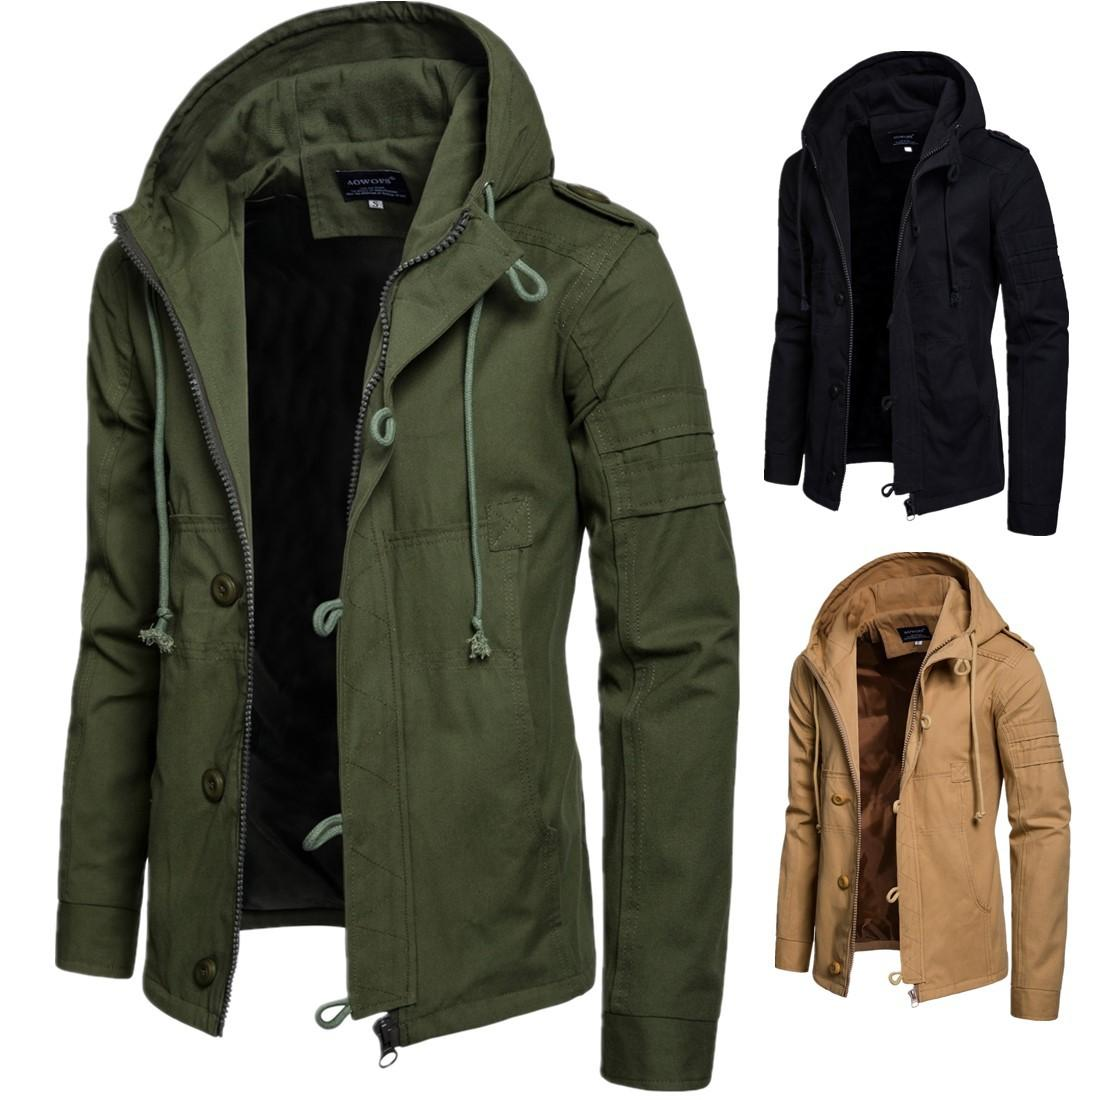 f8b983e03 2018 Men Autumn Jackets and Coats Jaqueta Masculina Male Causal Fashion  Slim Fitted Large Size Zipper Jackets Hombre Outdoor Coat YJ006